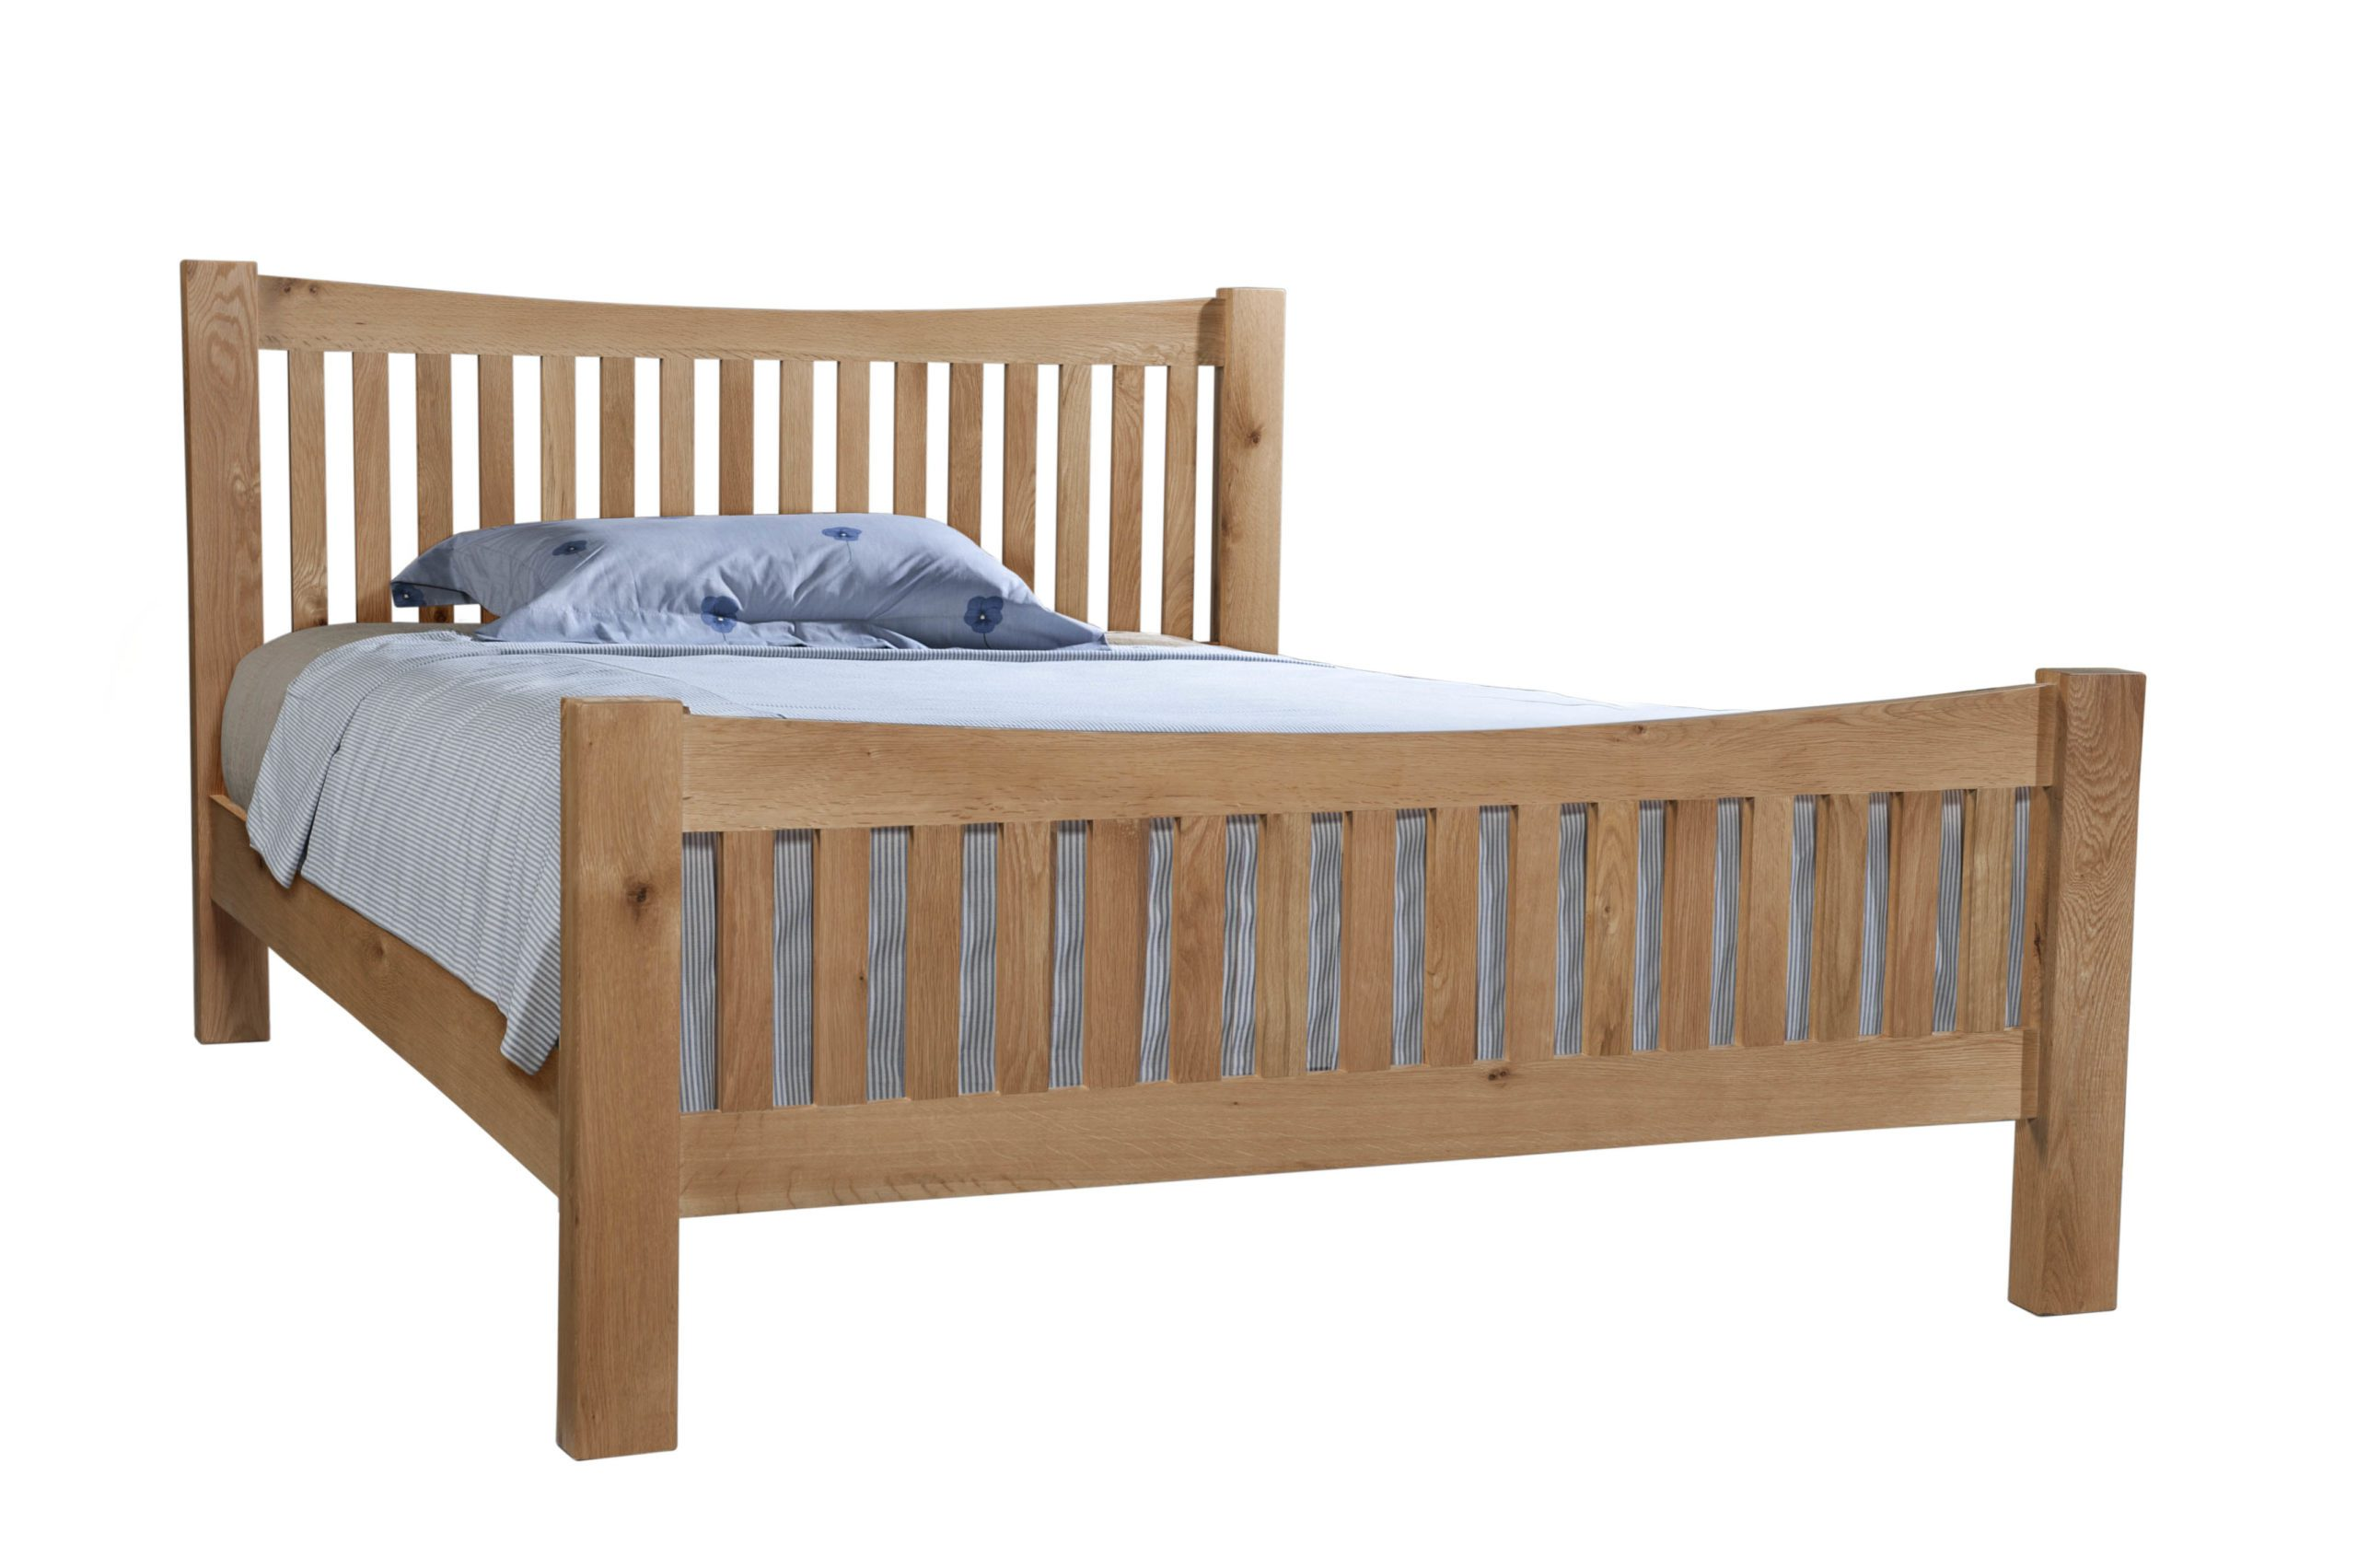 Dorset oak DOR43 king size bed with slatted headboard and footend